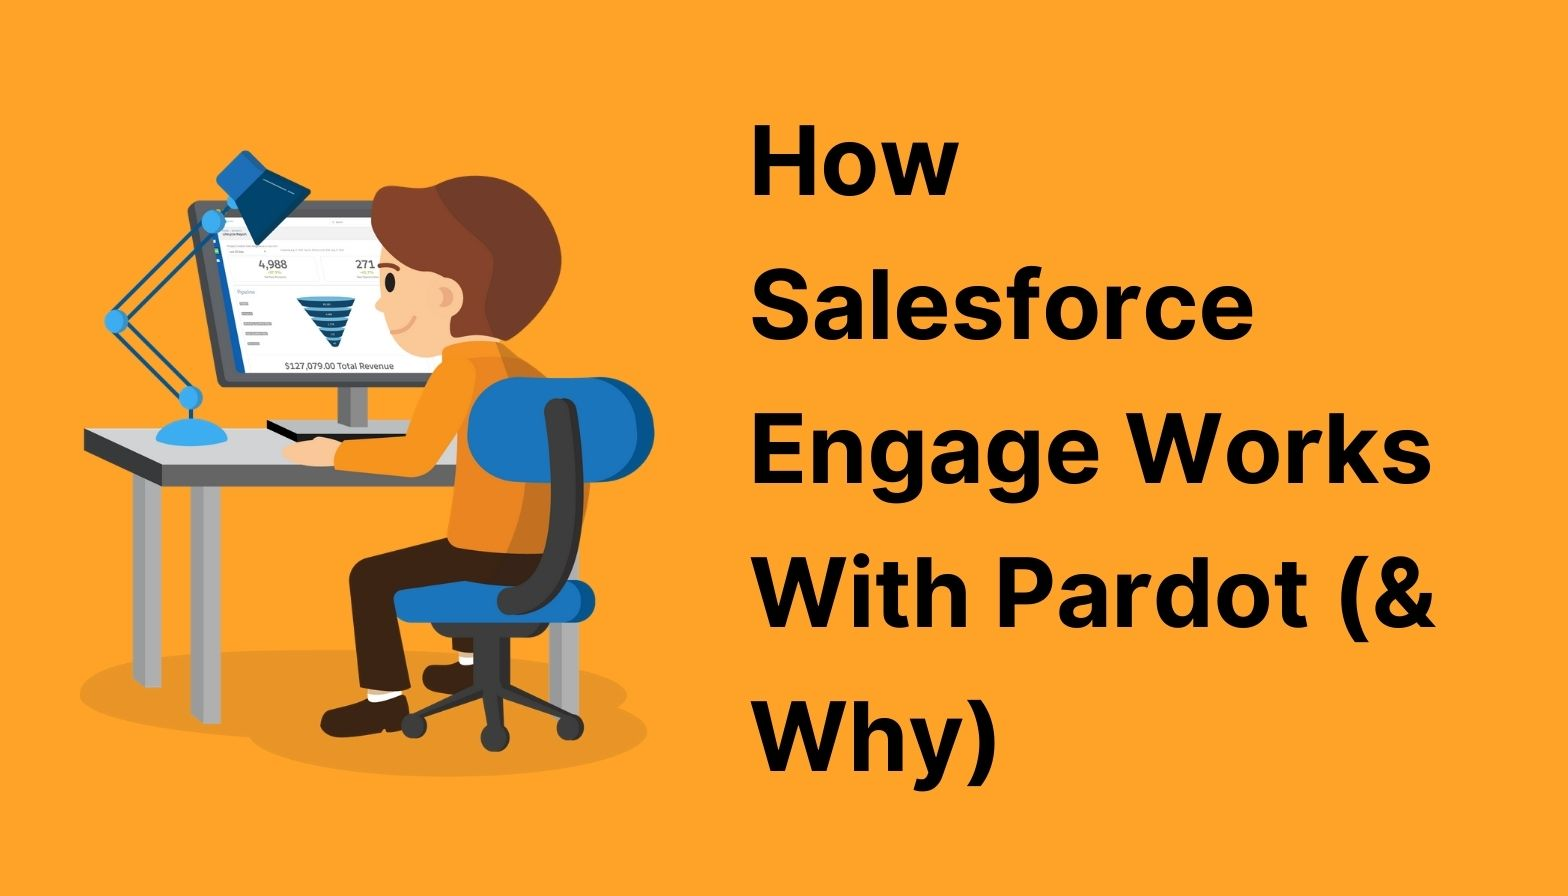 How Salesforce Engage Works With Pardot & Why